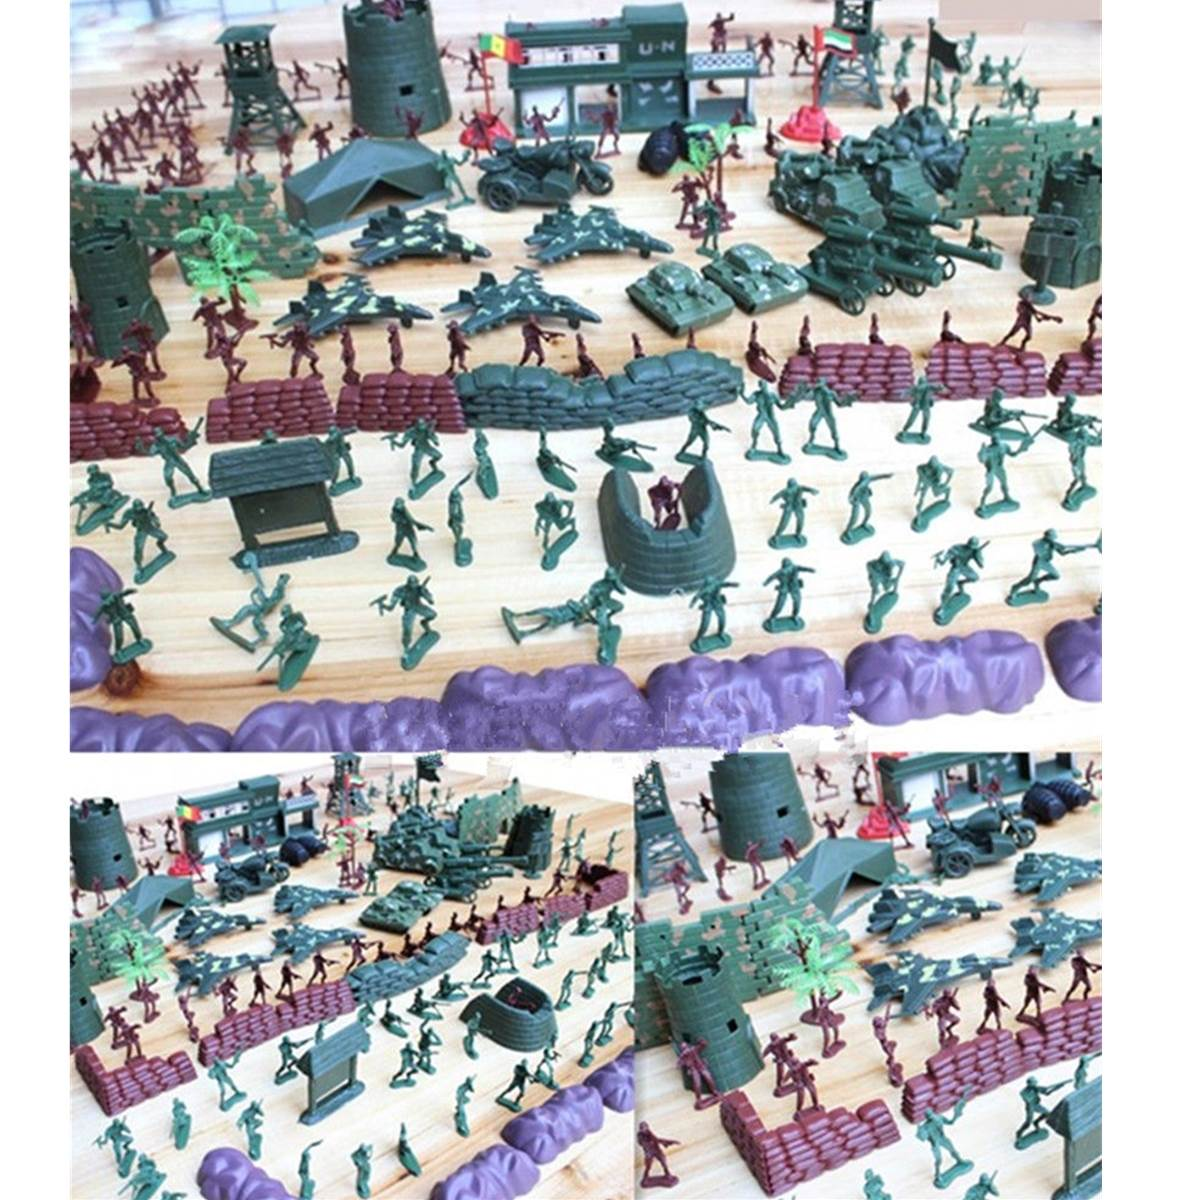 500pcs/set Military Playset Plastic Toy Soldiers Army Men 4cm Figures Accessories Model Toys Sets For Children Boys Adult